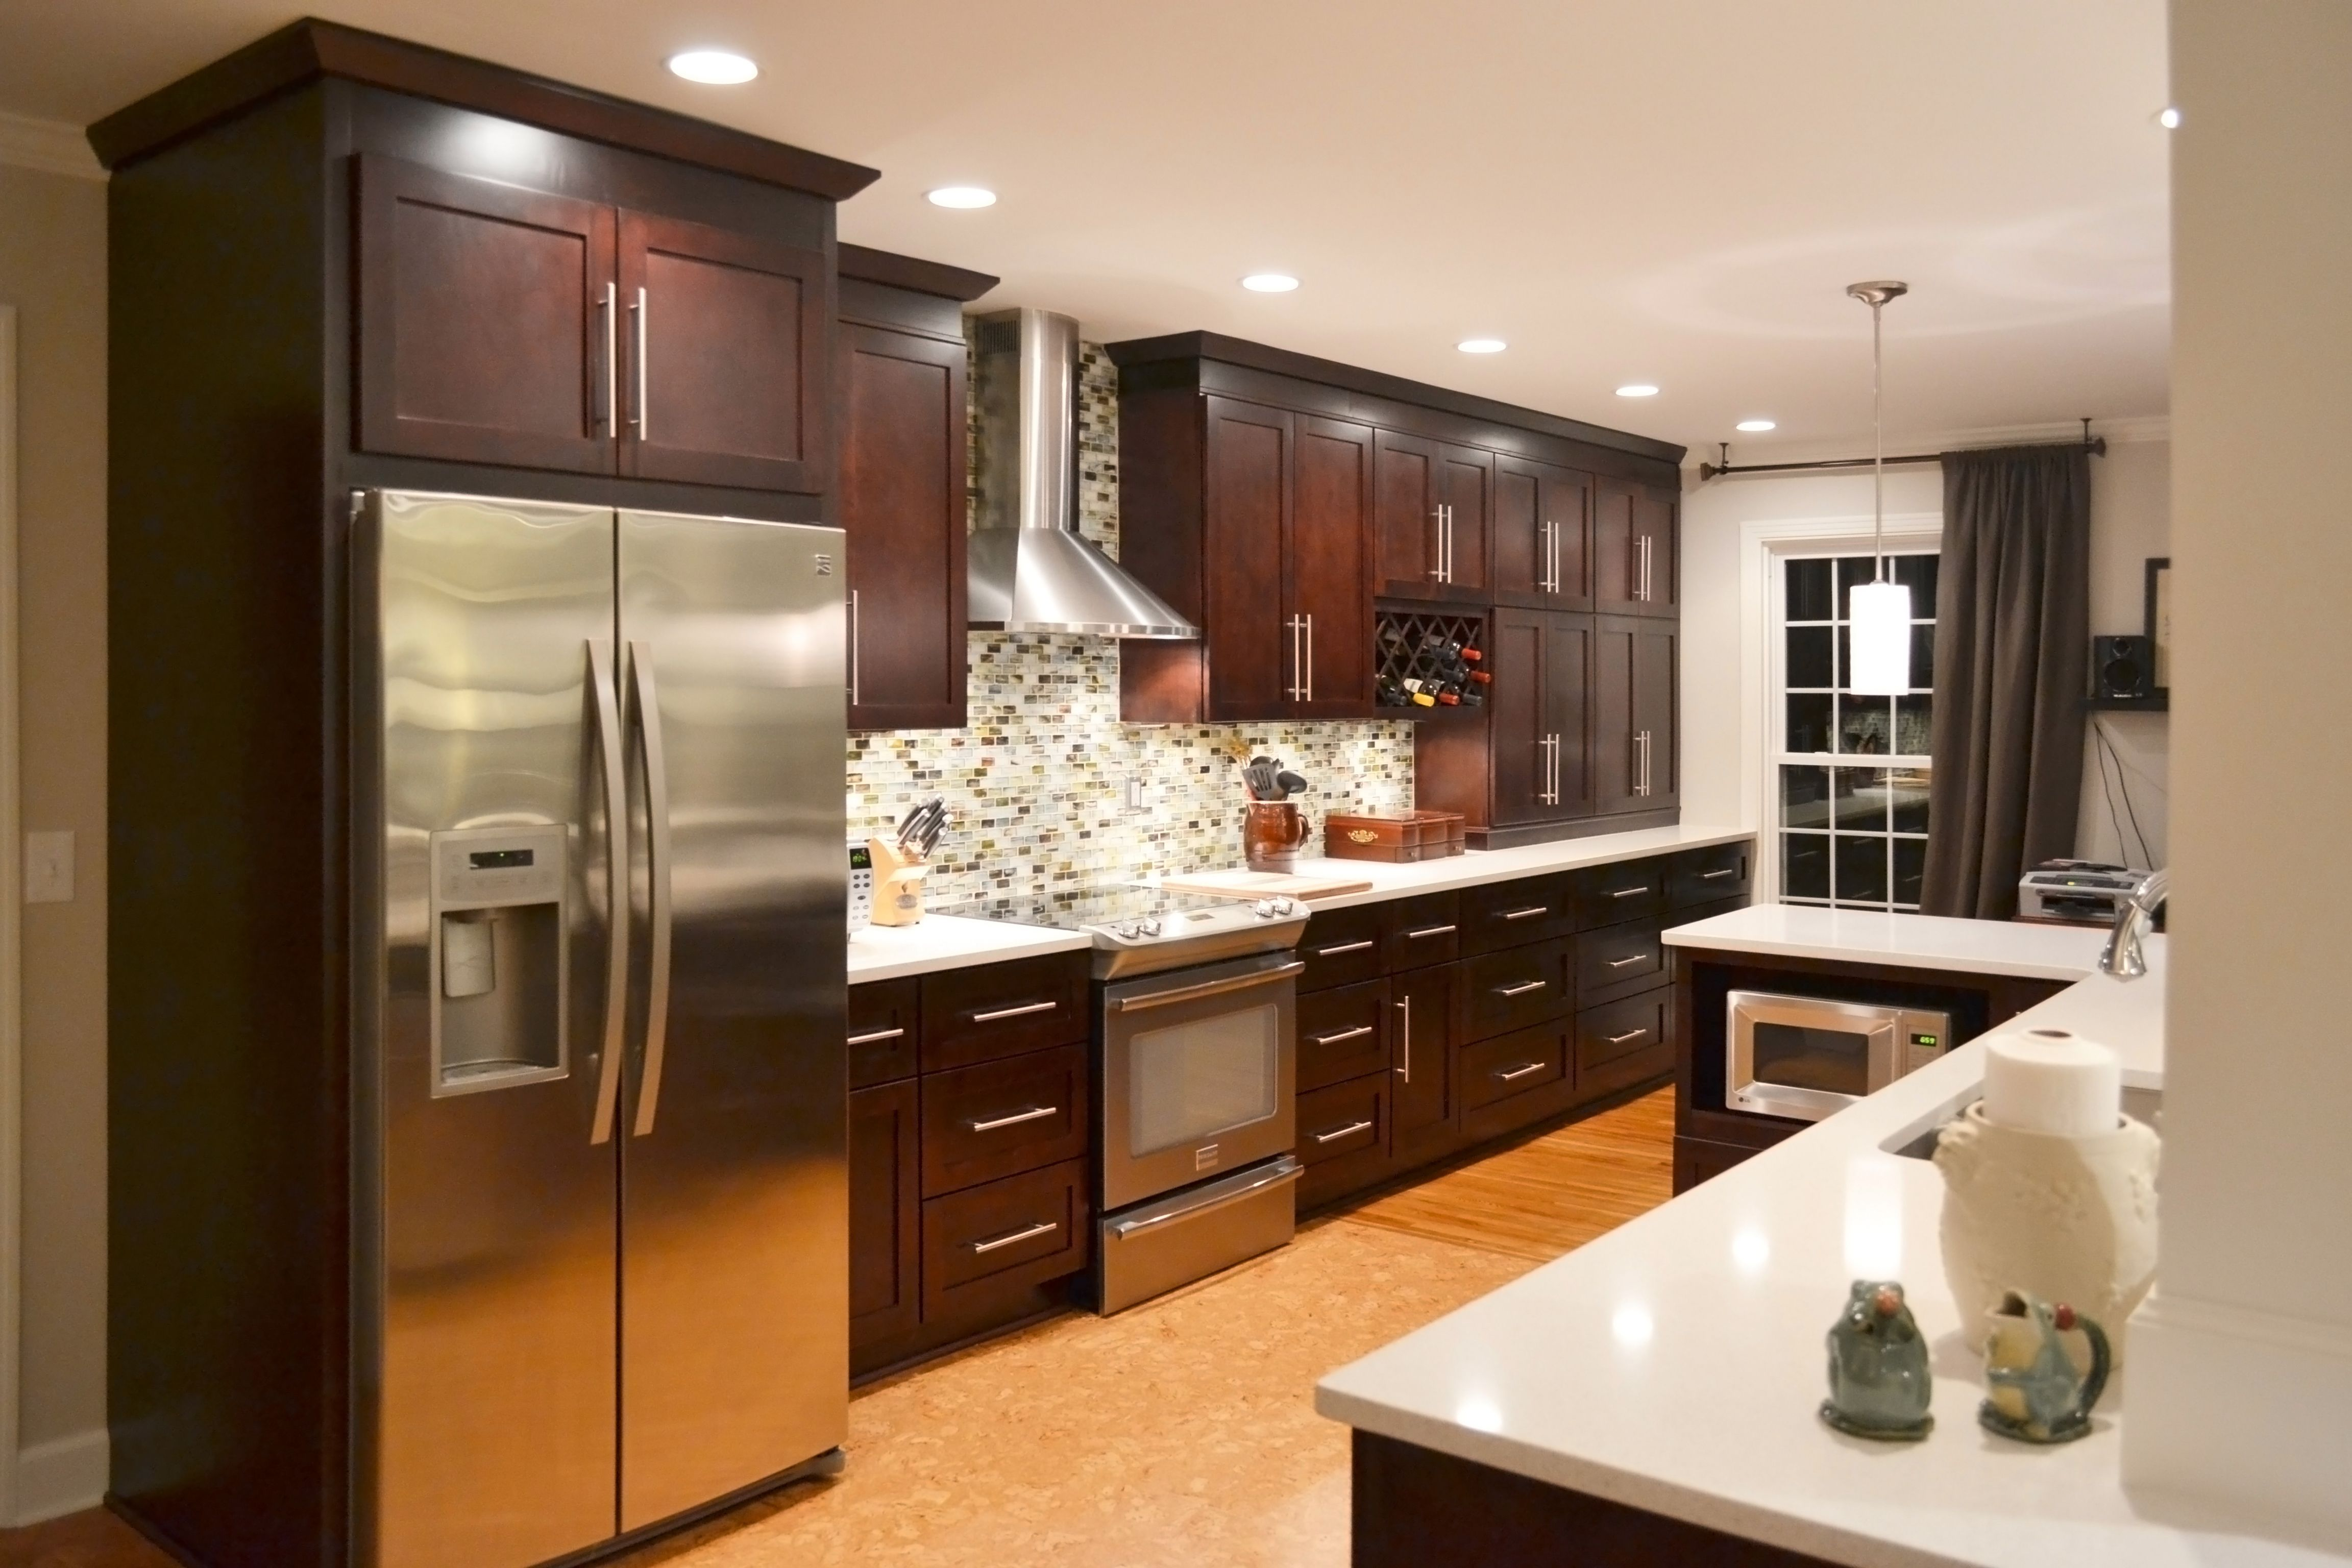 kitchen designers nashville nashville tn this kitchen design maximizes storage space 294